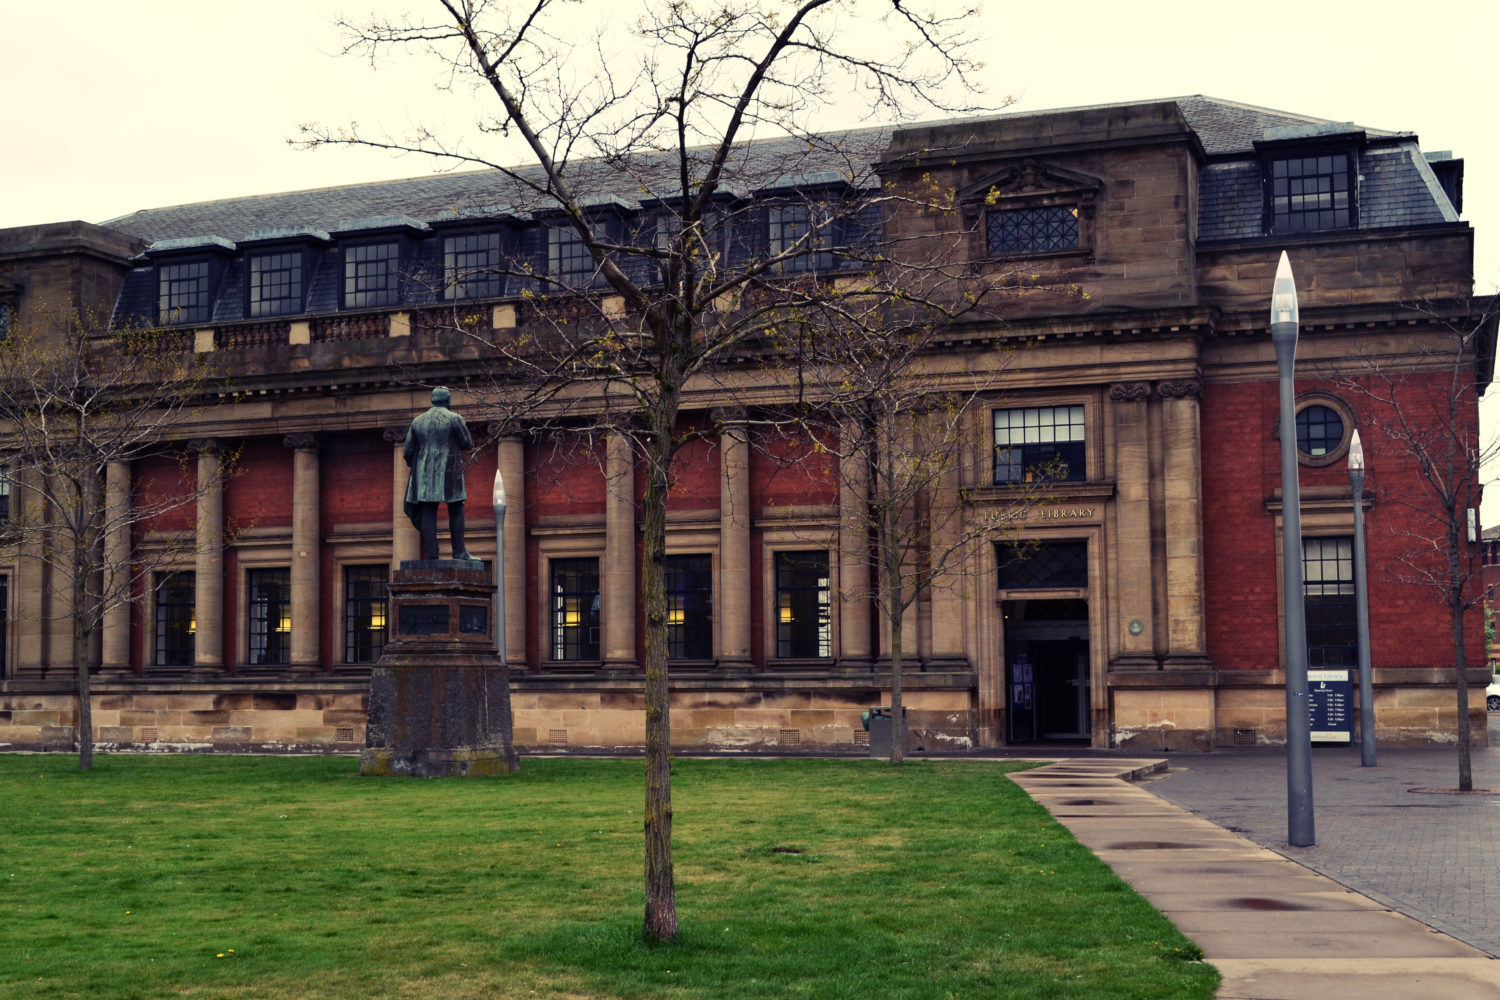 Middlesbrough Central Library